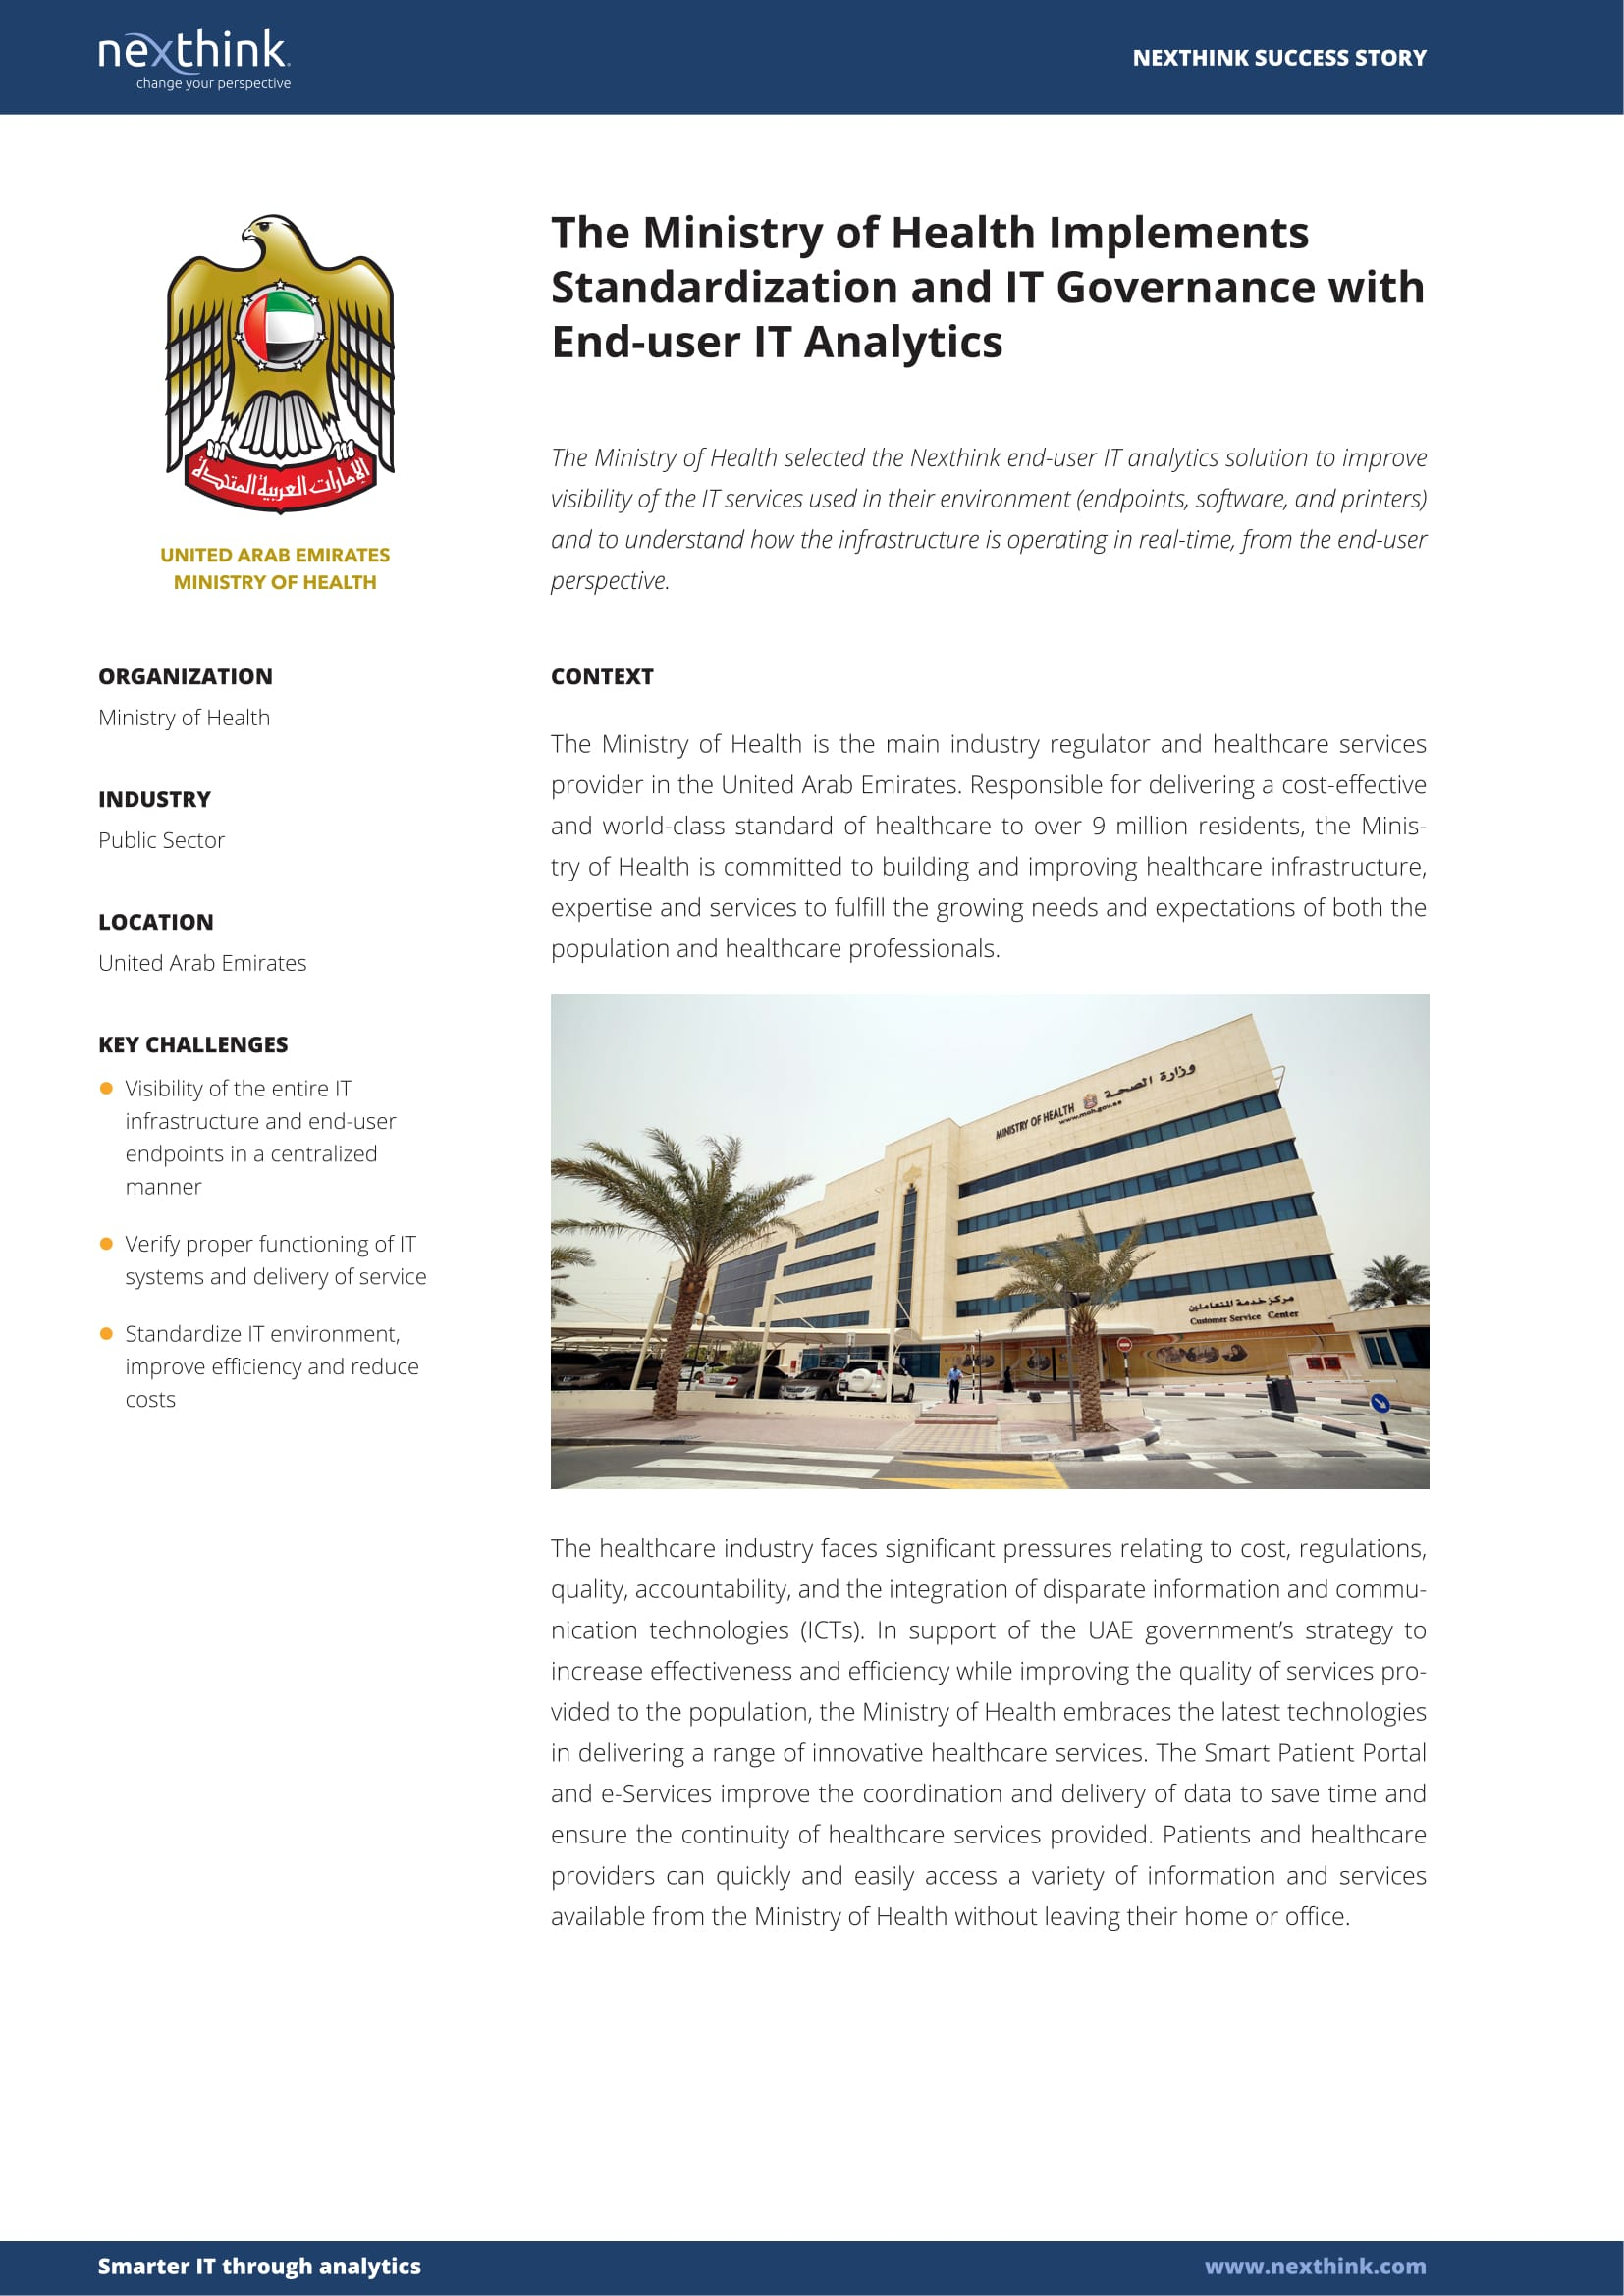 The Ministry of Health Implements Standardization and IT Governance with End-user IT Analytics